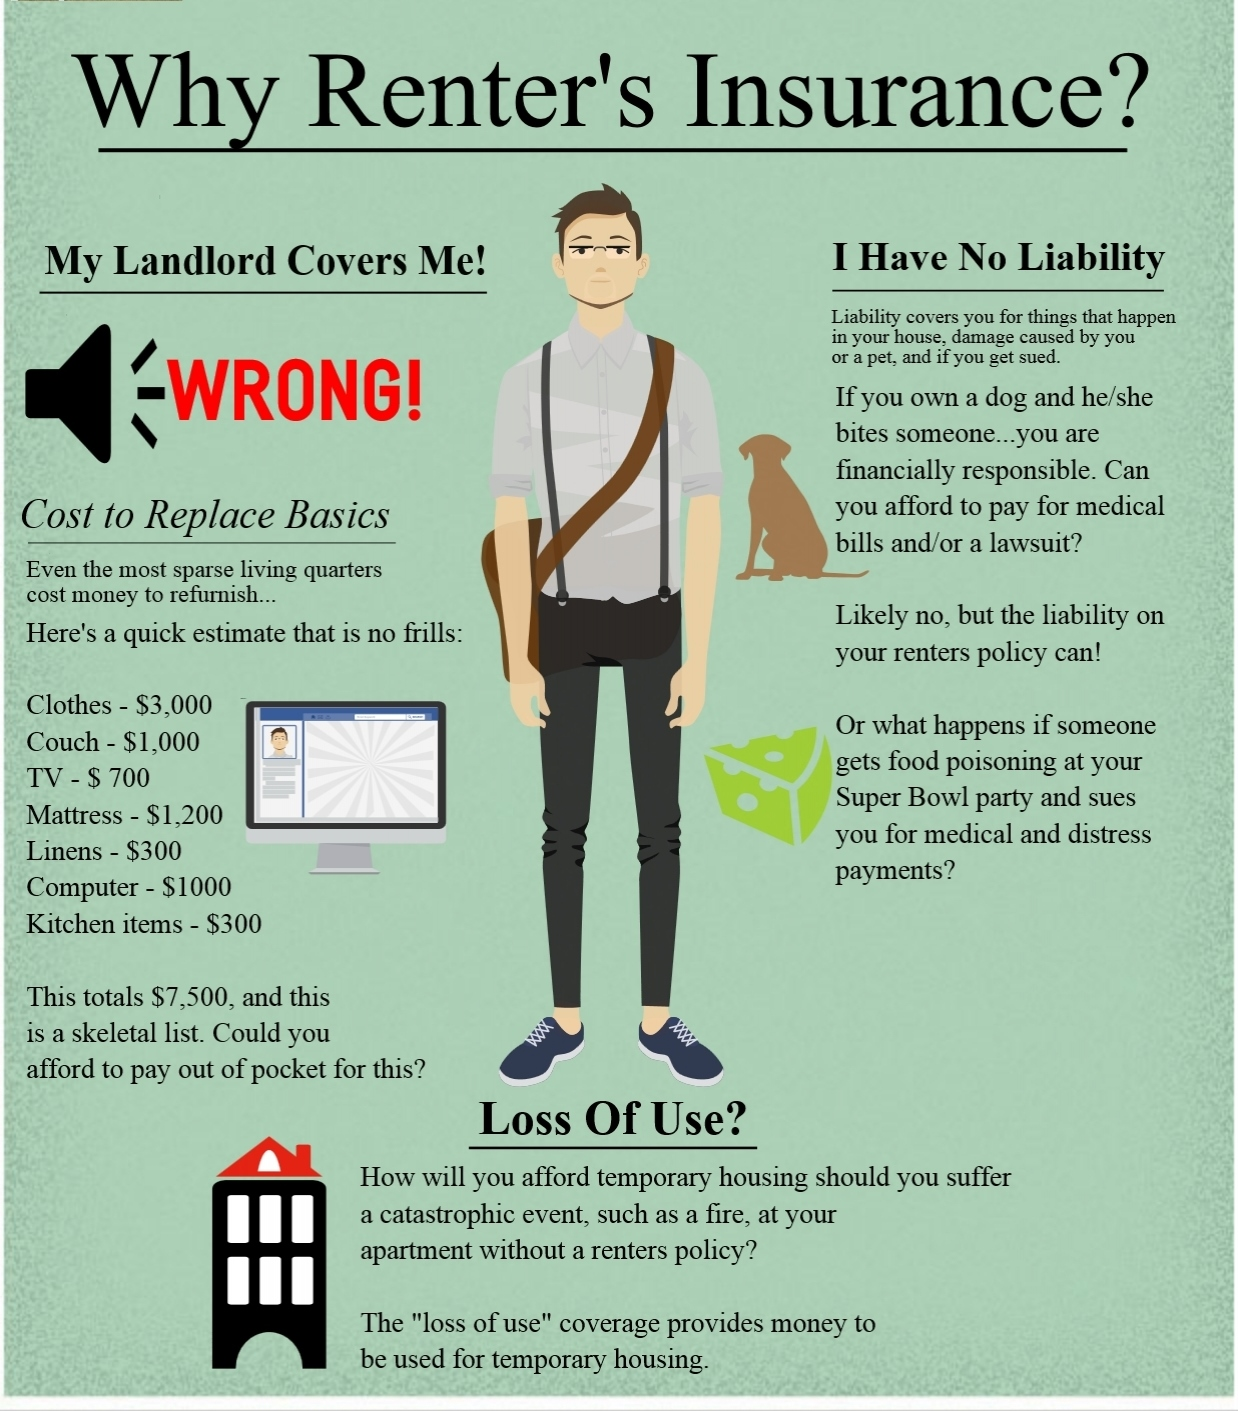 Renter's Insurance - Why?